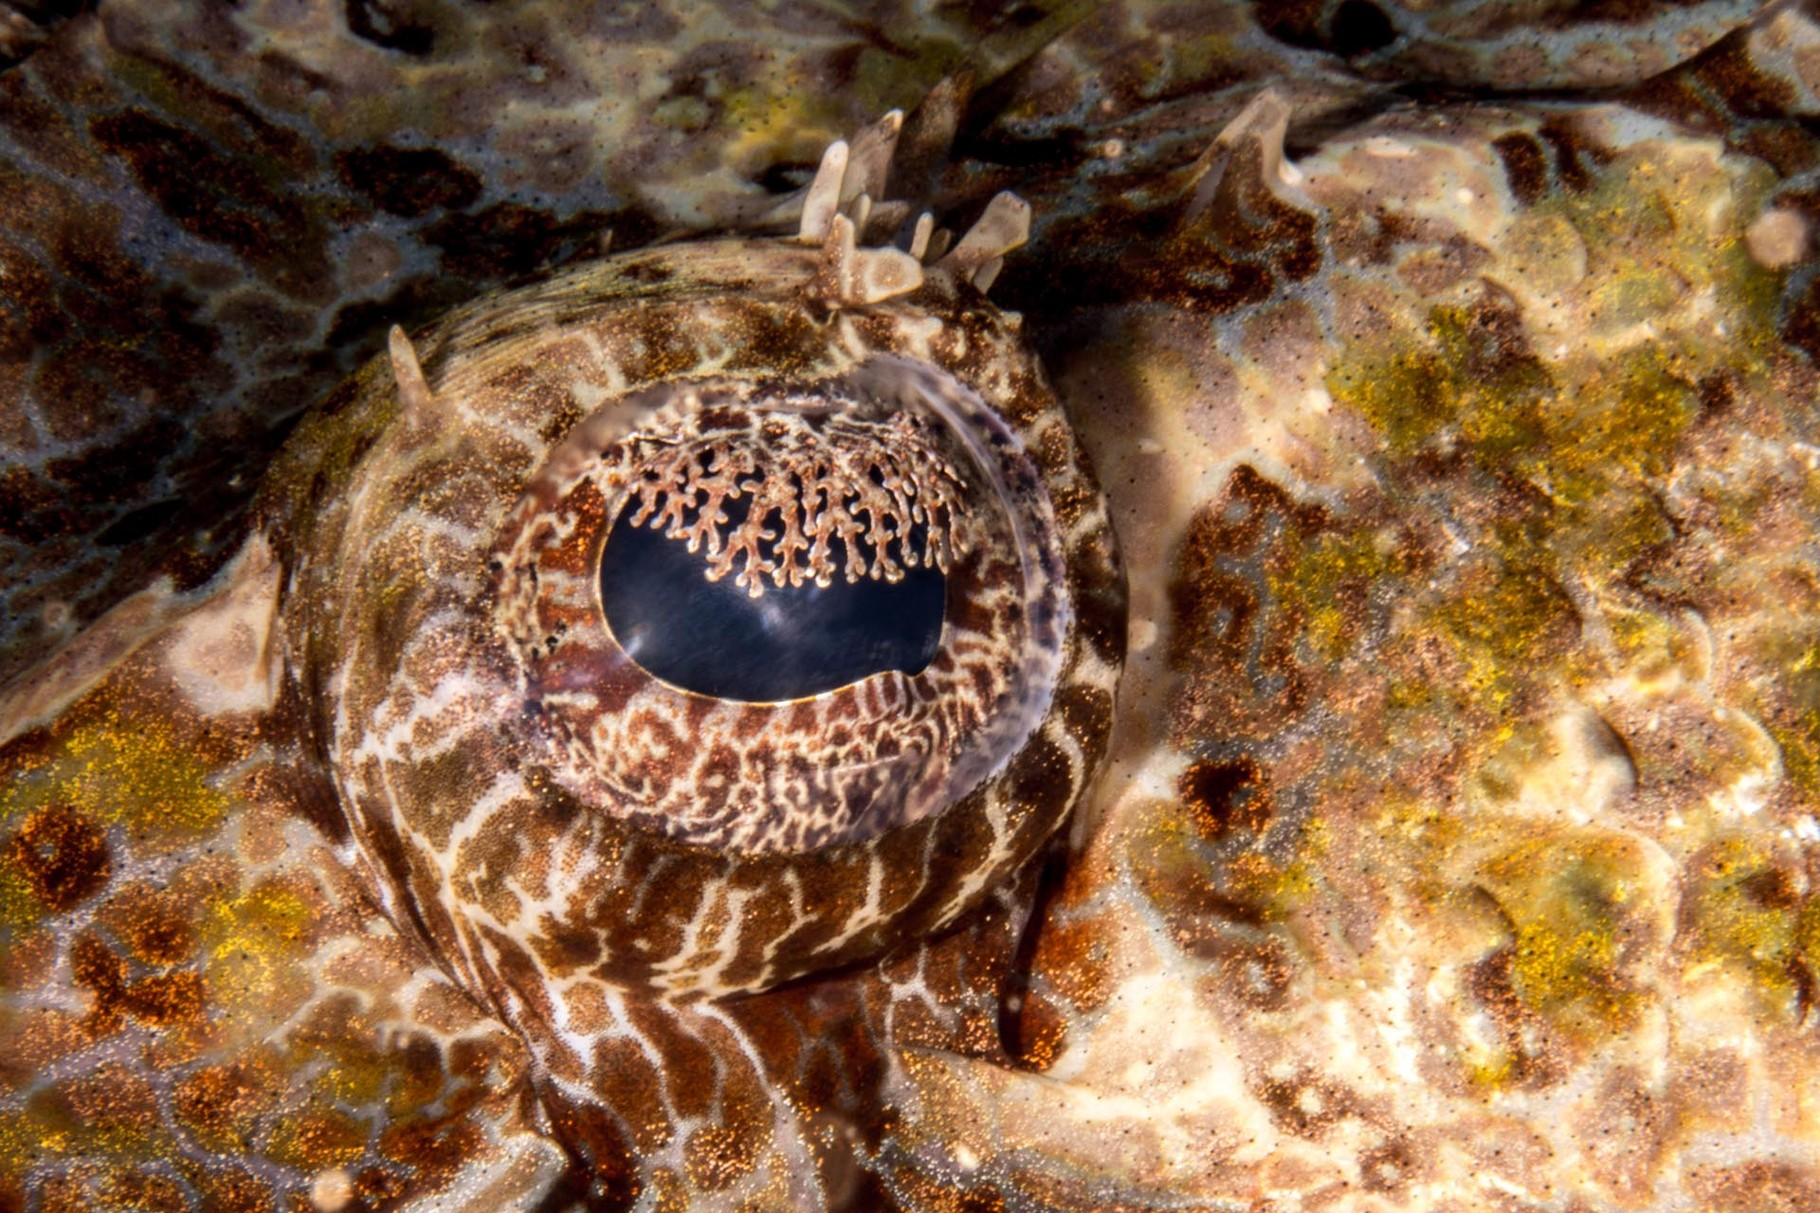 Eye of a Crocodile fish, Hienghene [New Caledonia, 2014]